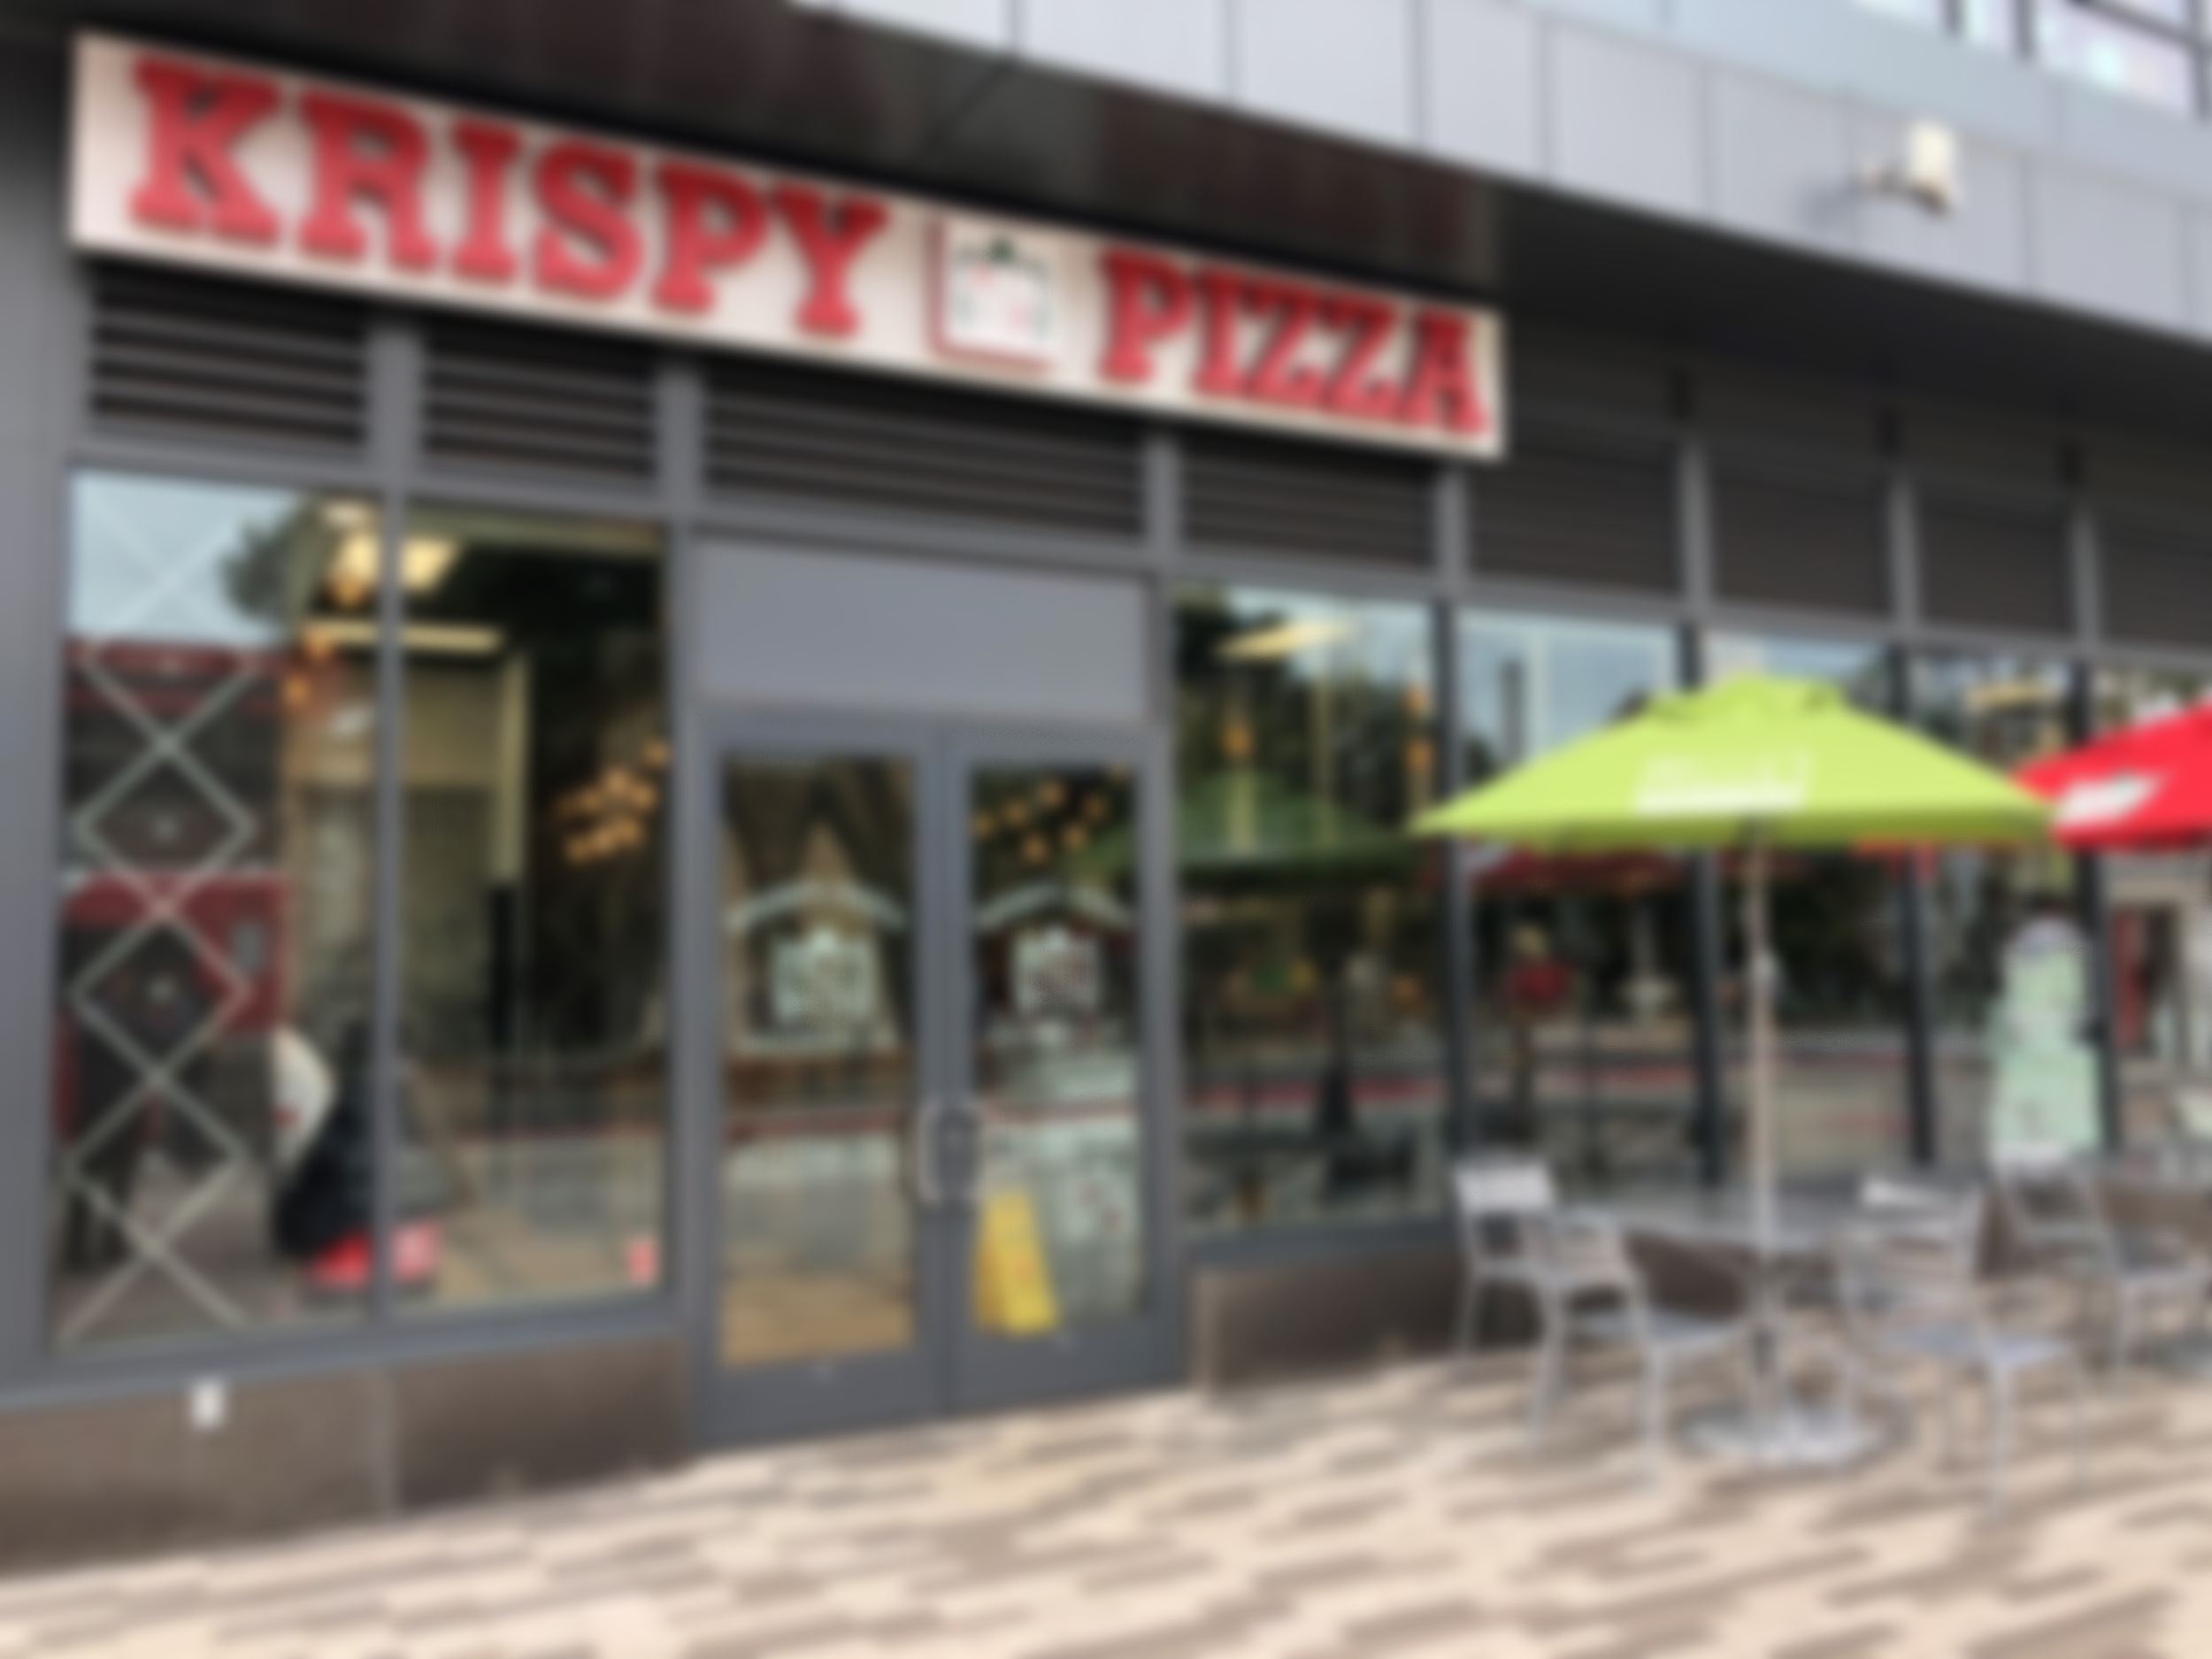 Krispy Pizza - authentic brooklyn-style pizza